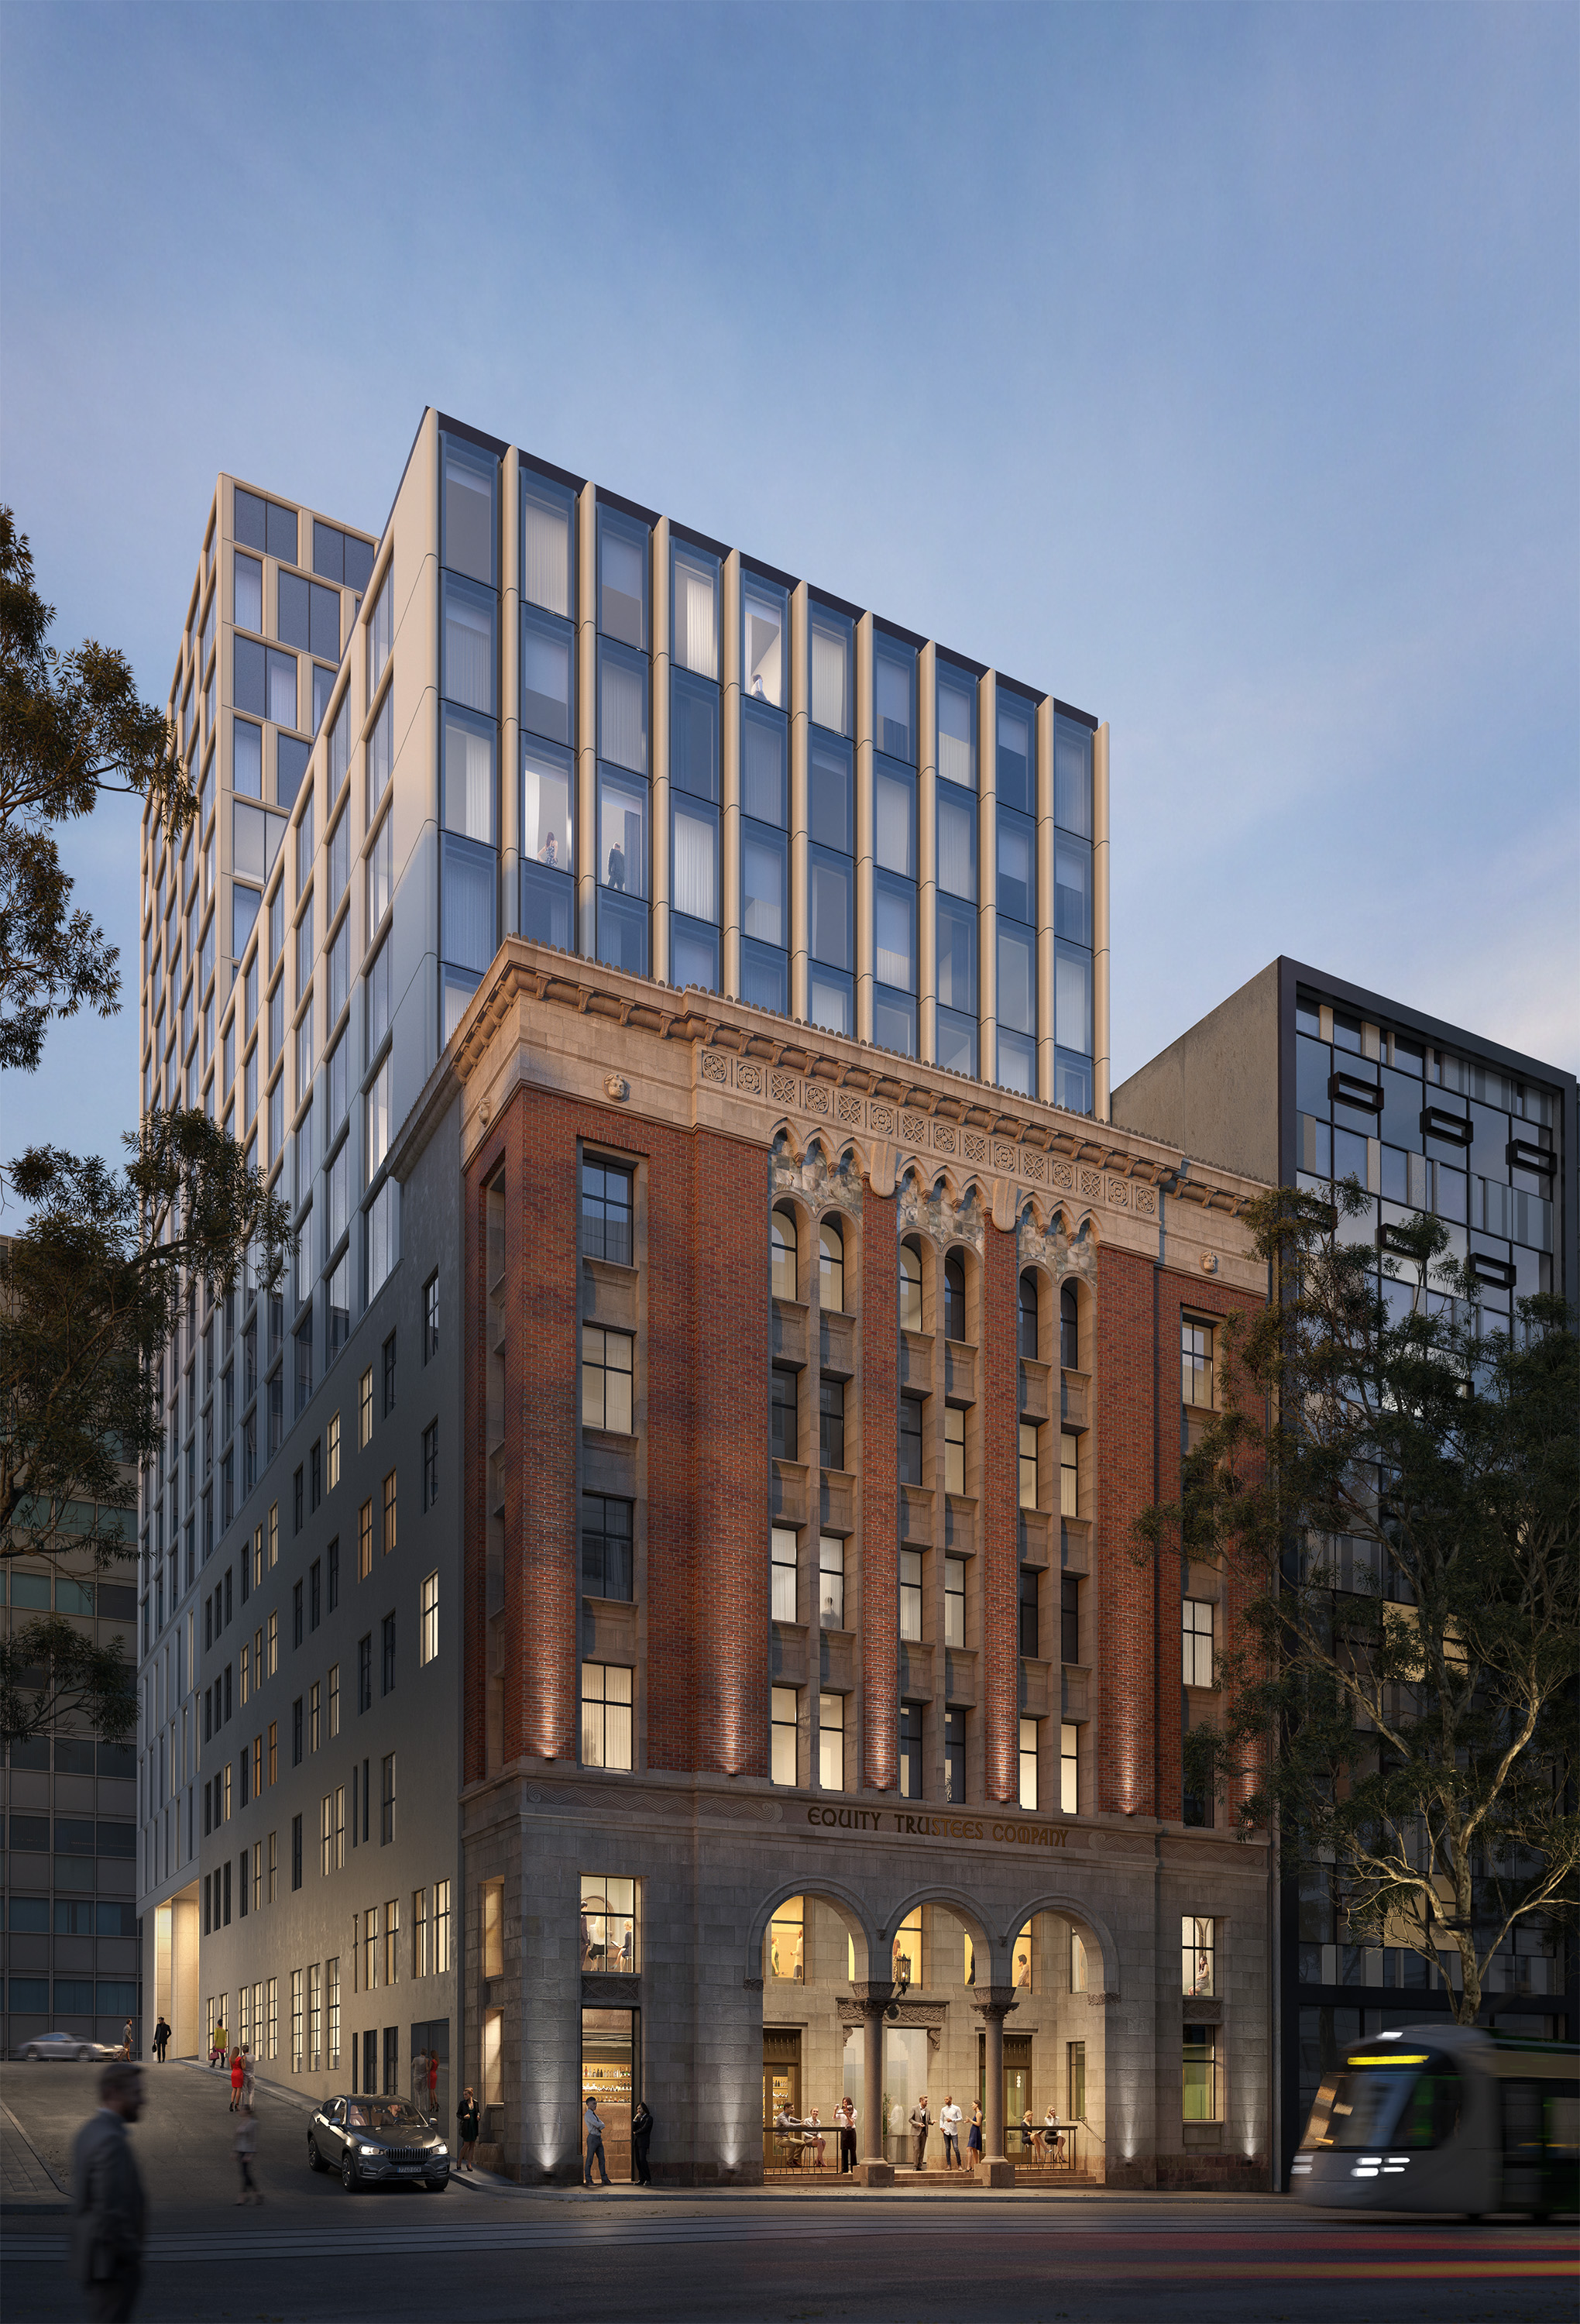 Hilton Hotels Resorts: Hilton Partners With M&L Hospitality To Expand Presence In